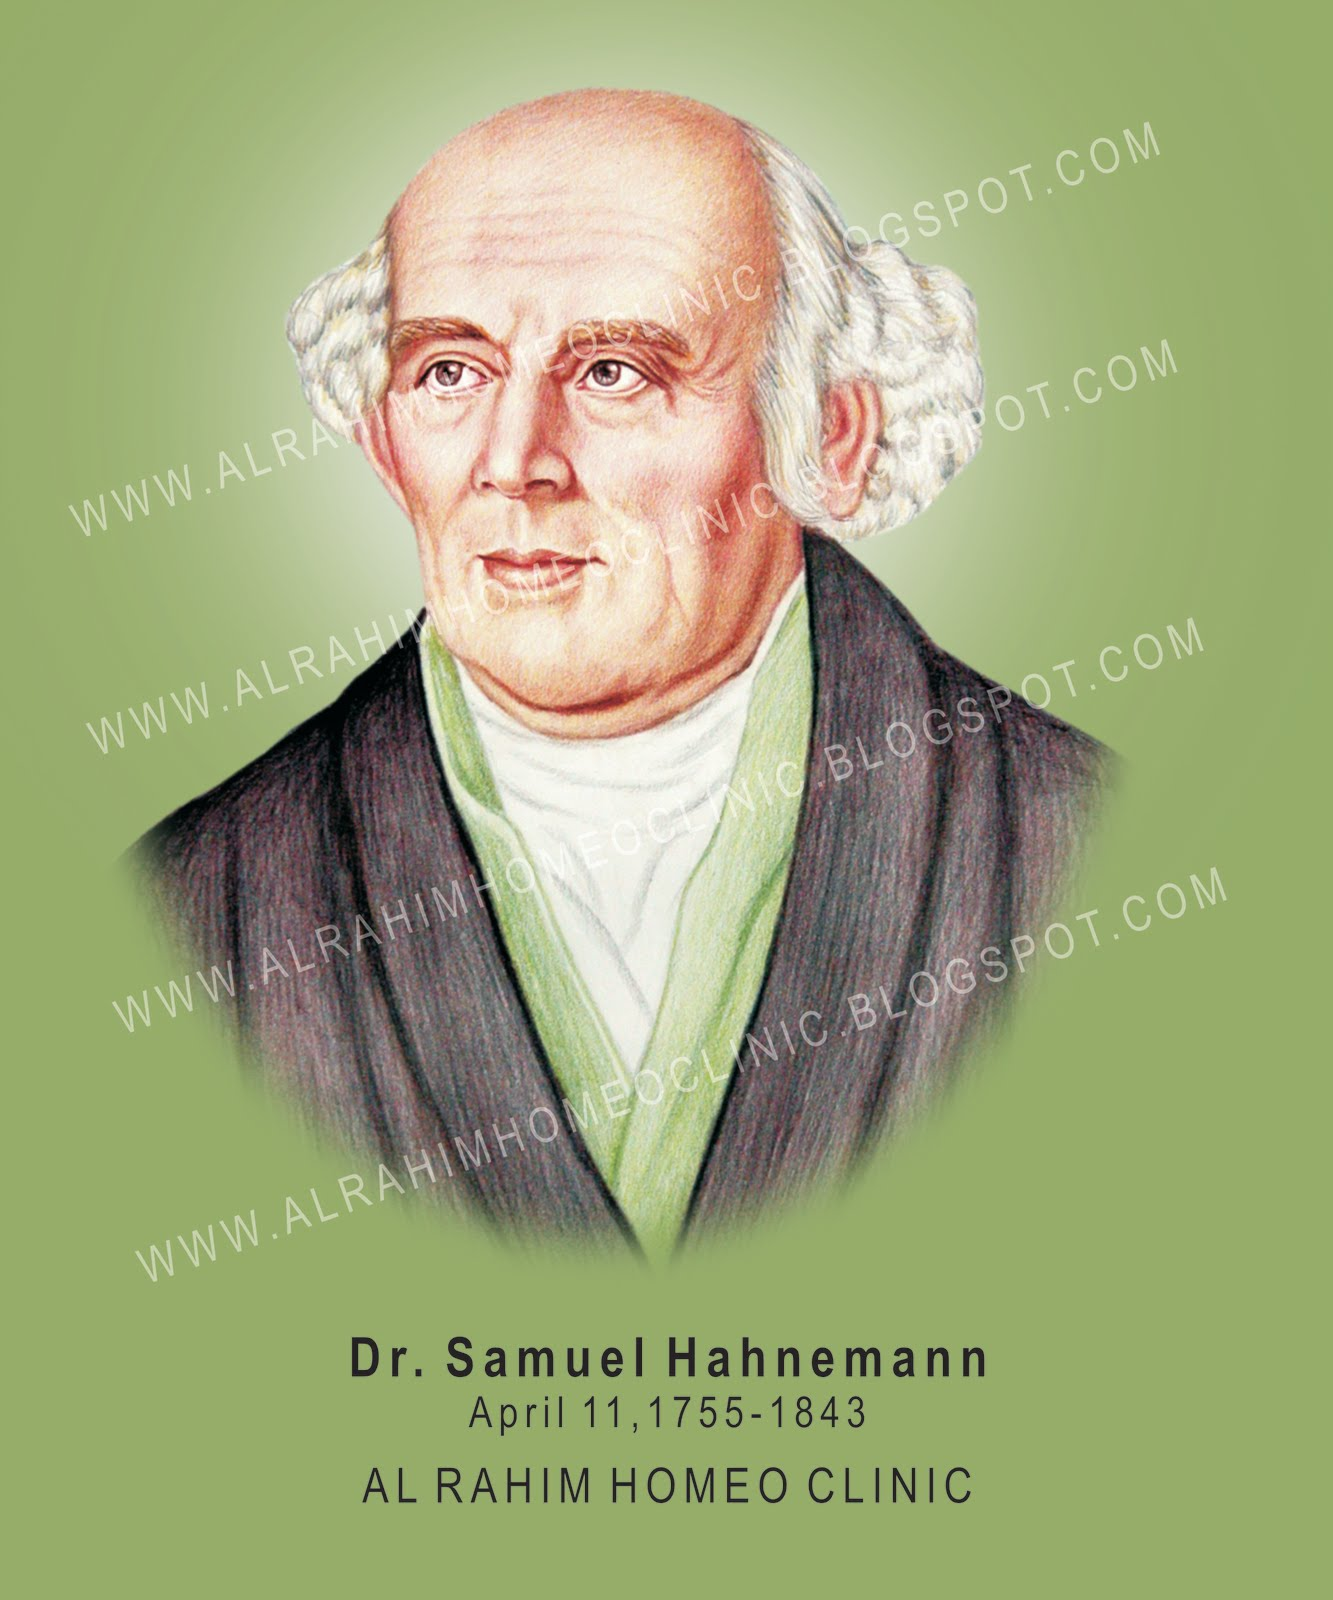 a essay on science of homeopathy developed by samuel hahnemann Writepass - essay writing - dissertation topics [toc]introductionwhat are miasmsthe beginning: hahnemann conception of chronic diseasesthe relapsesthe missing linkthe cause: infectious agentsthe underlying predispositionthe original malady: psora and non-venereal chronic diseasesopinions on the theory of psorathe.